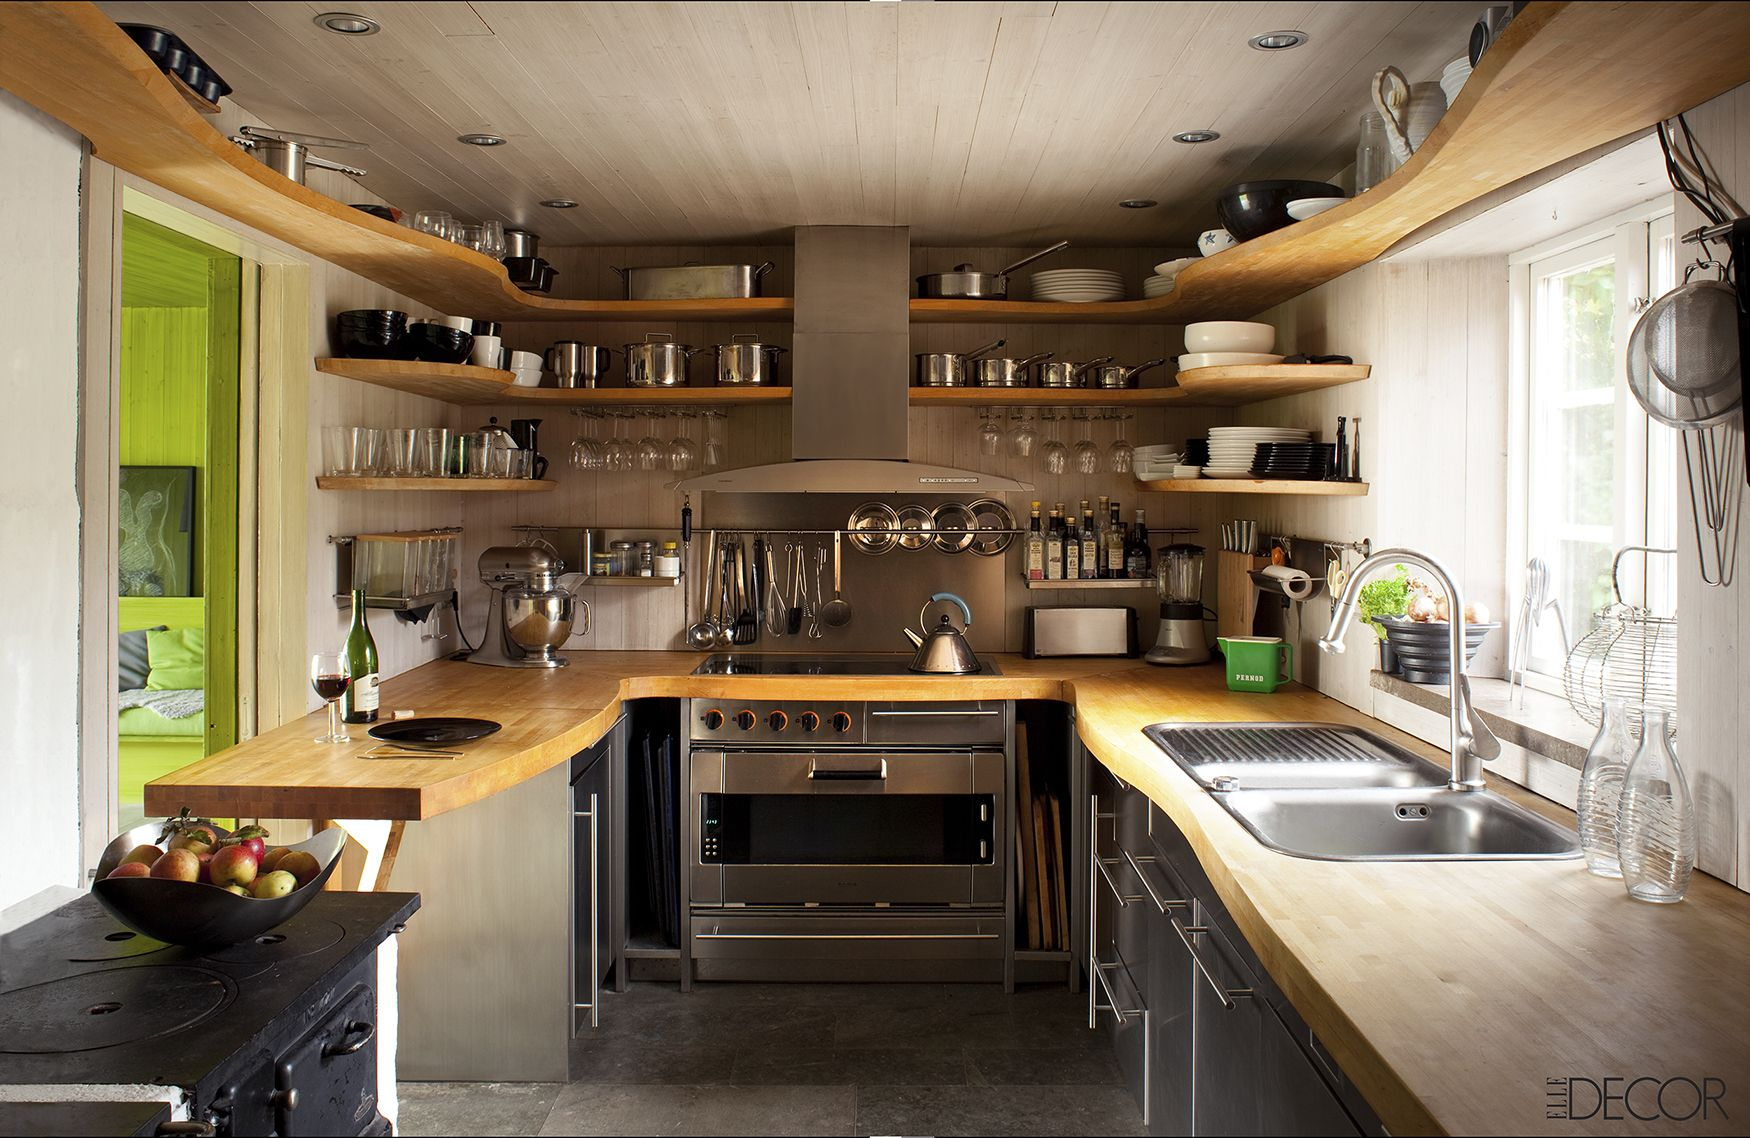 Home Kitchen Ideas 55 Small Kitchen Design Ideas  Decorating Tiny Kitchens